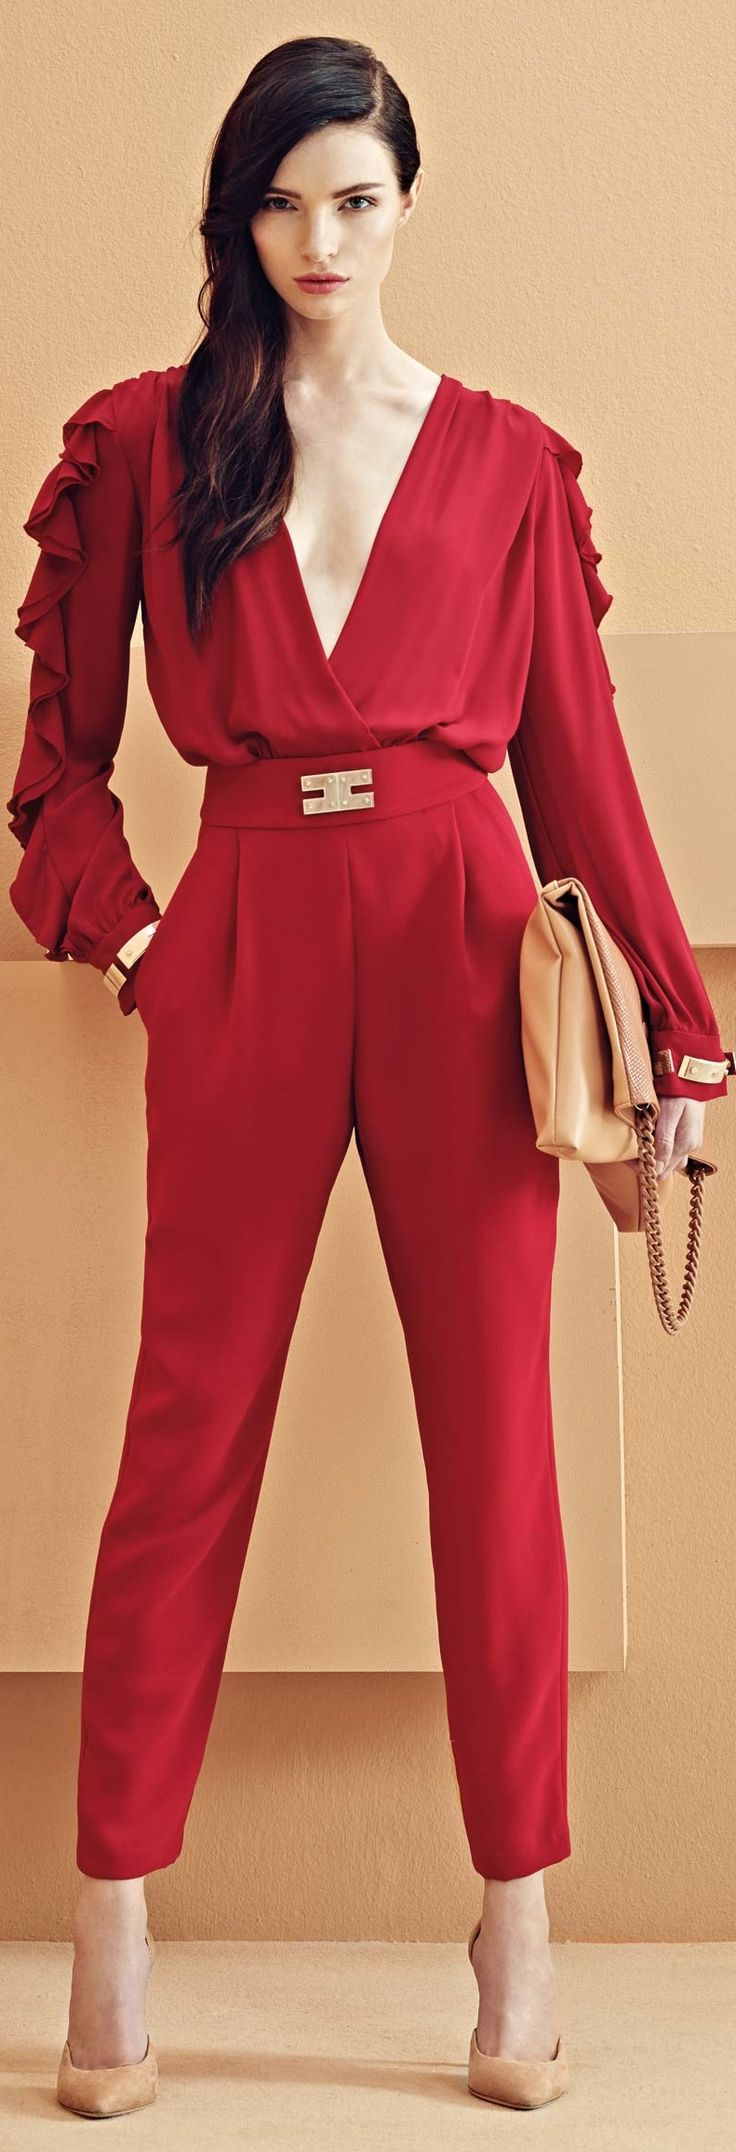 Red Jumpsuit Evening Wear Breeze Clothing